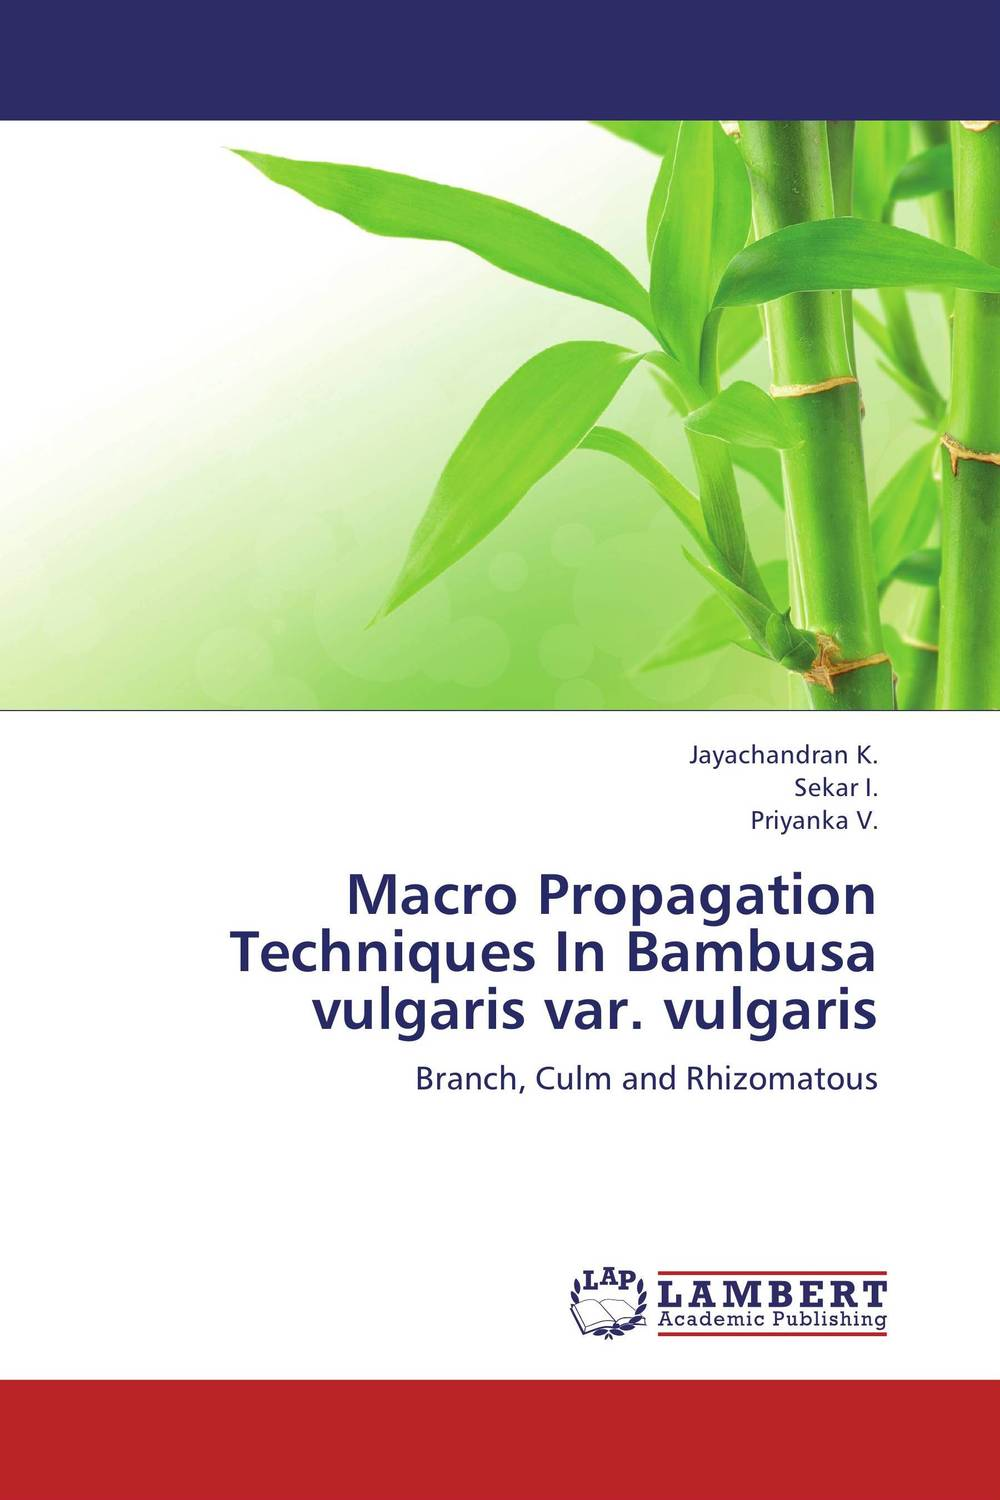 Macro Propagation Techniques In Bambusa vulgaris var. vulgaris adding value to the citrus pulp by enzyme biotechnology production